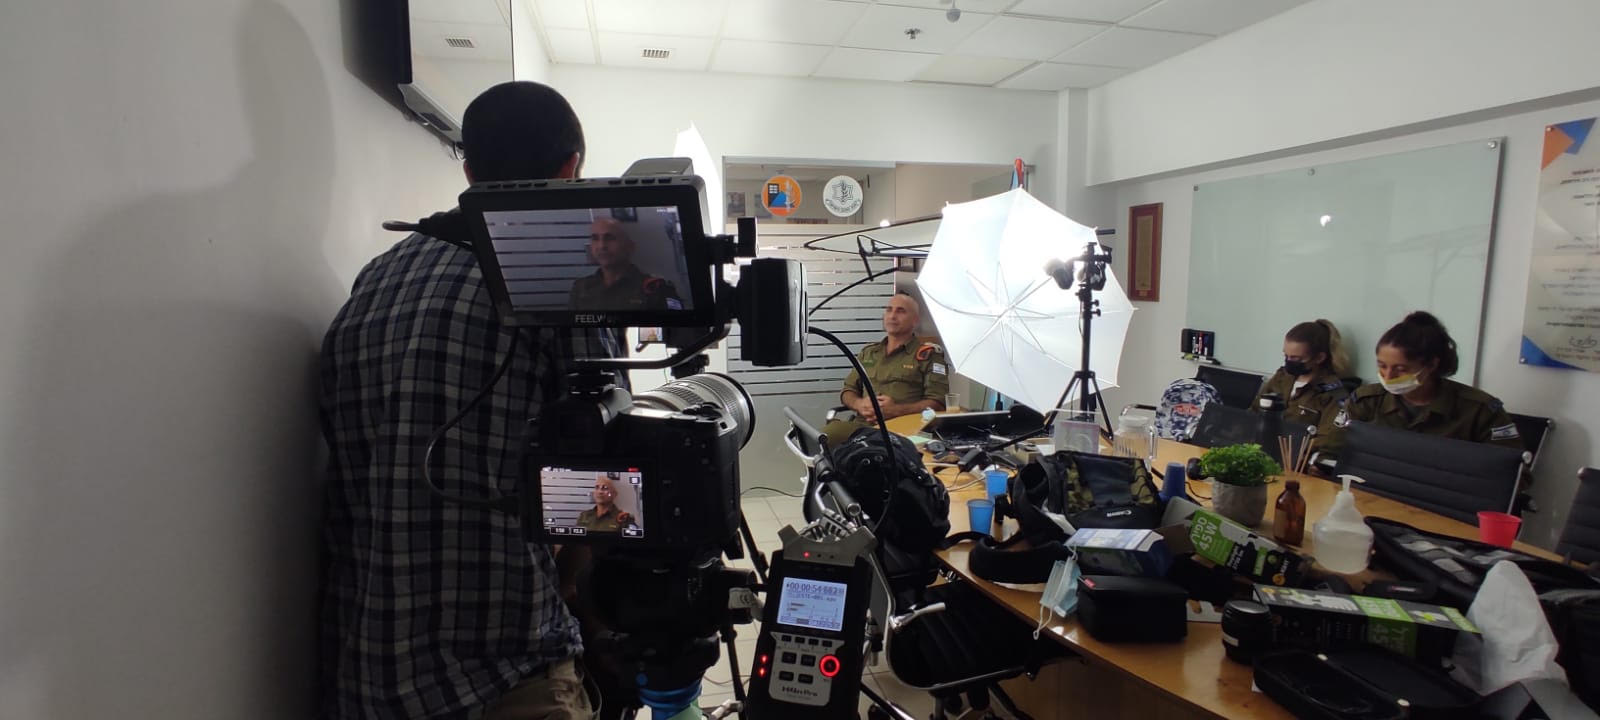 <b>First day of filming Underway at the IDF Home Front Command</b><br>